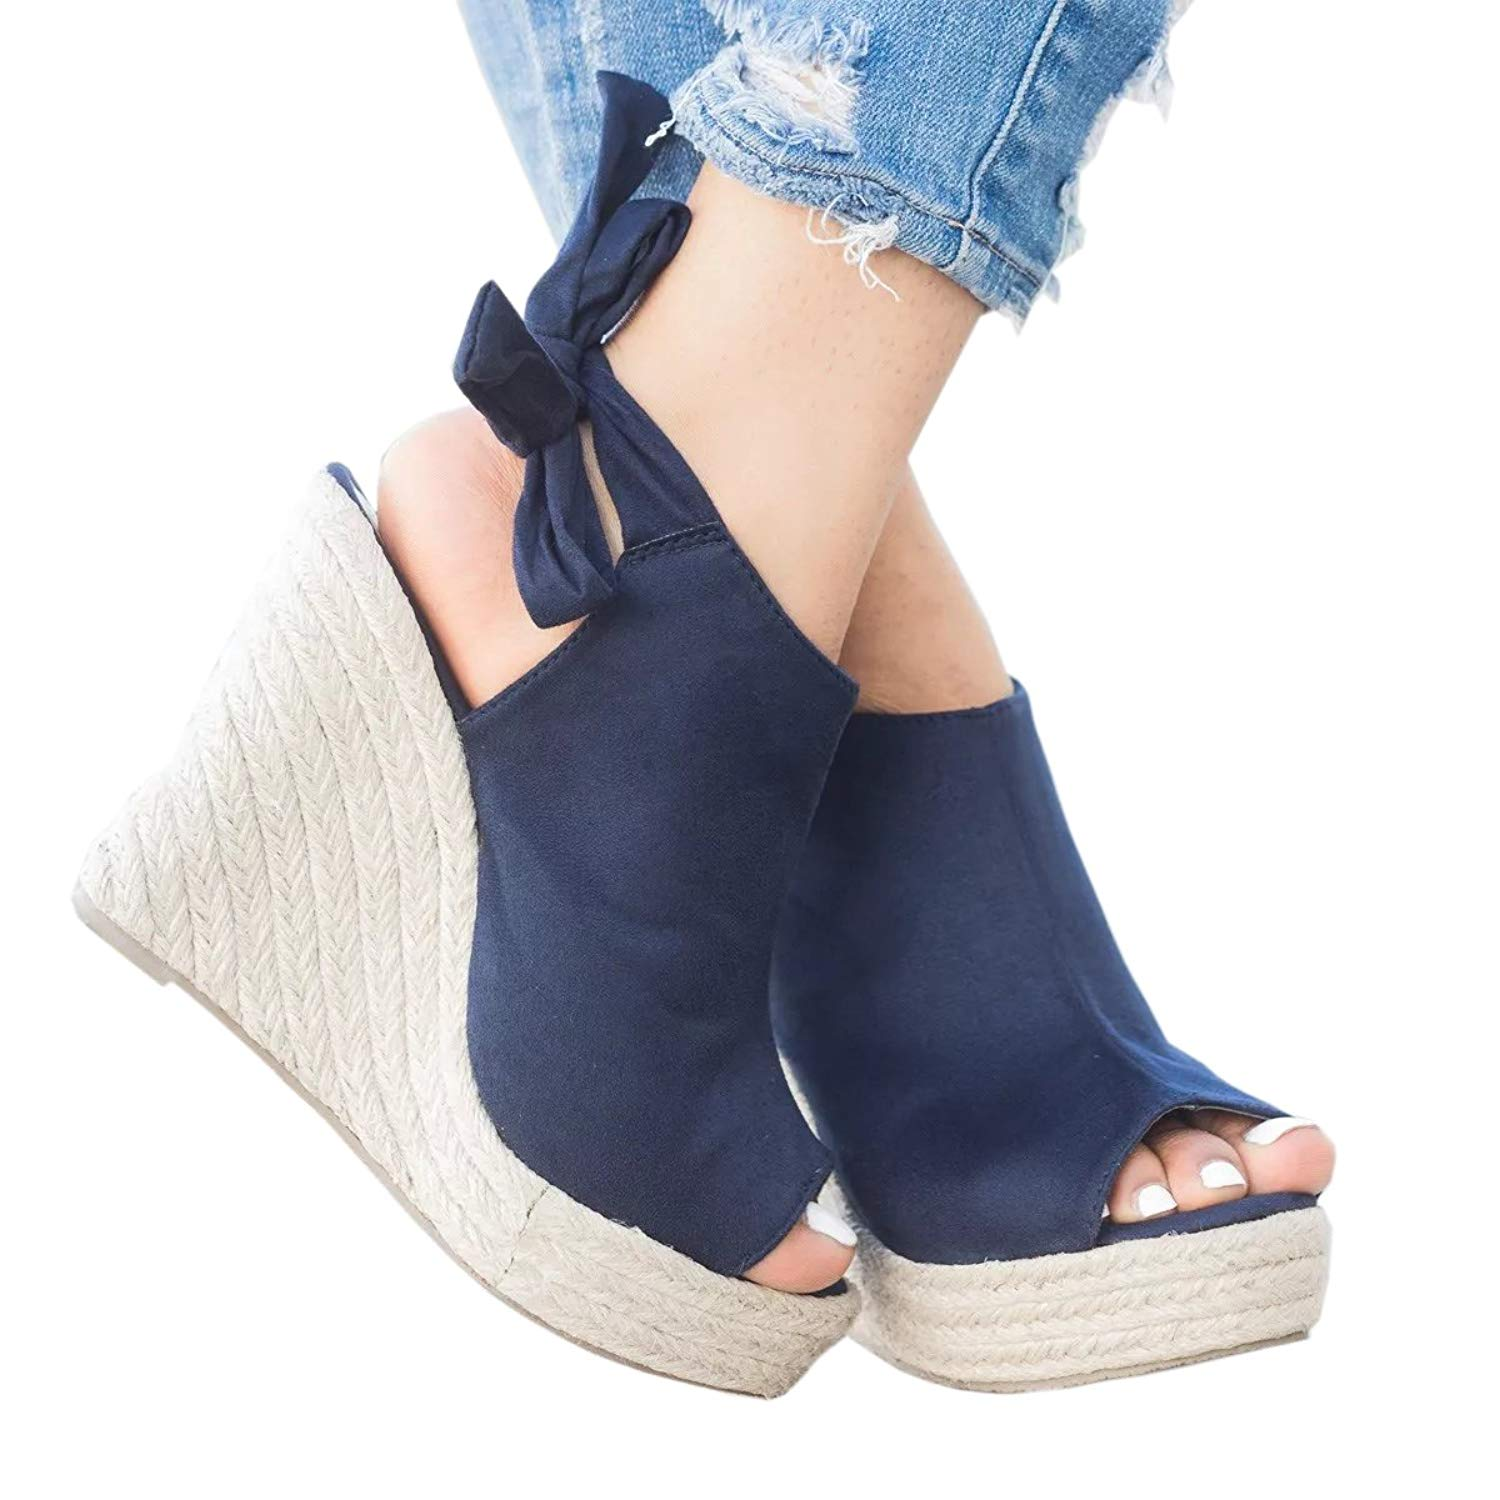 b181fae2e Get Quotations · Wedges Sandals For Womens Espadrille Platform Peep Toe  Ankle Strap Mid Heel Suede Back Lace Up